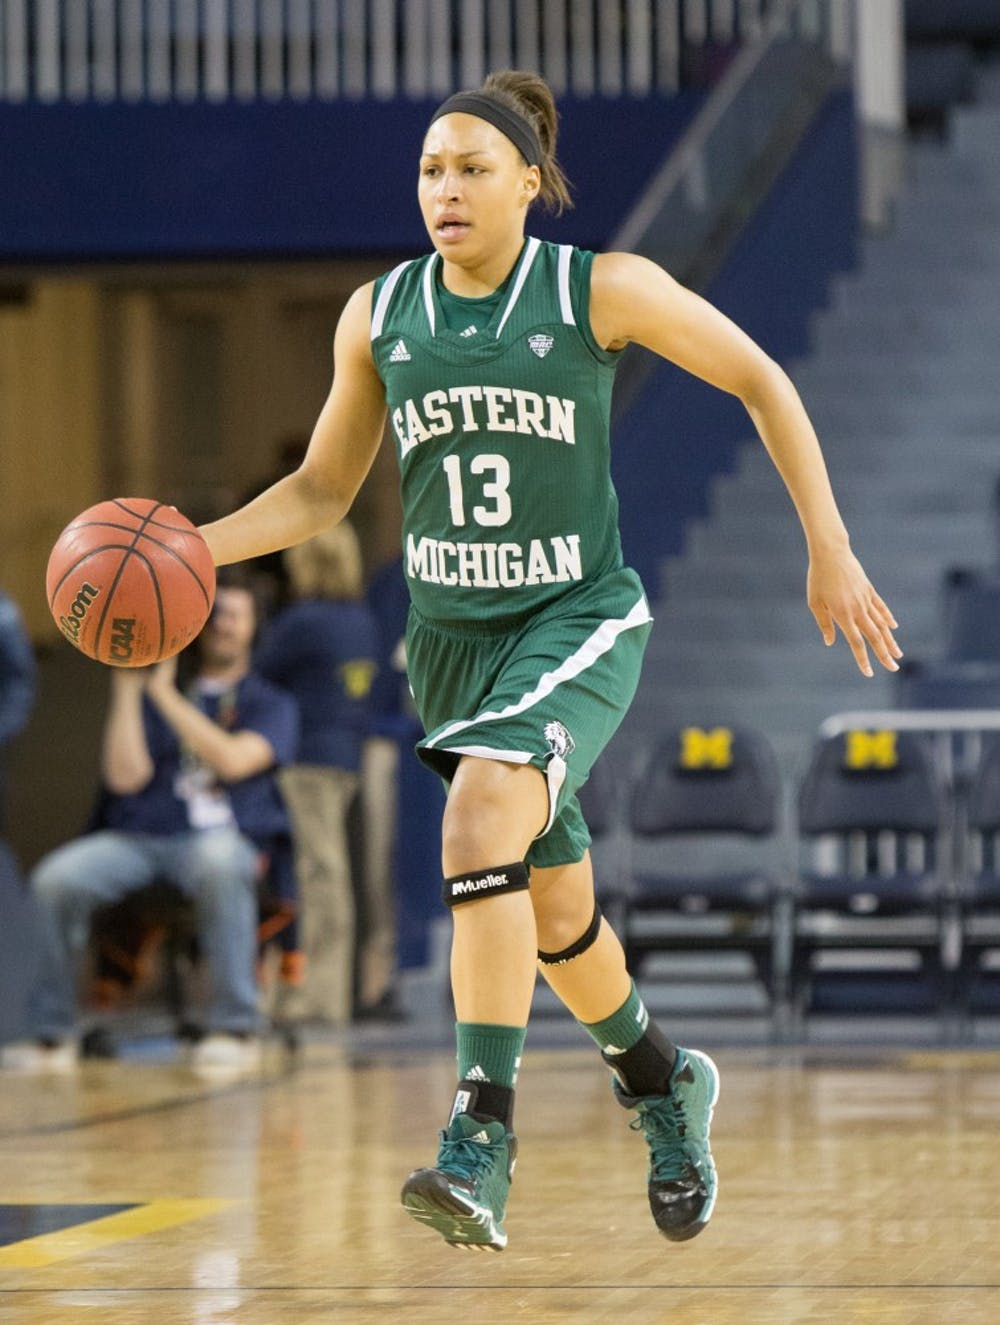 Morton's offense earns her MAC West Player of the Week